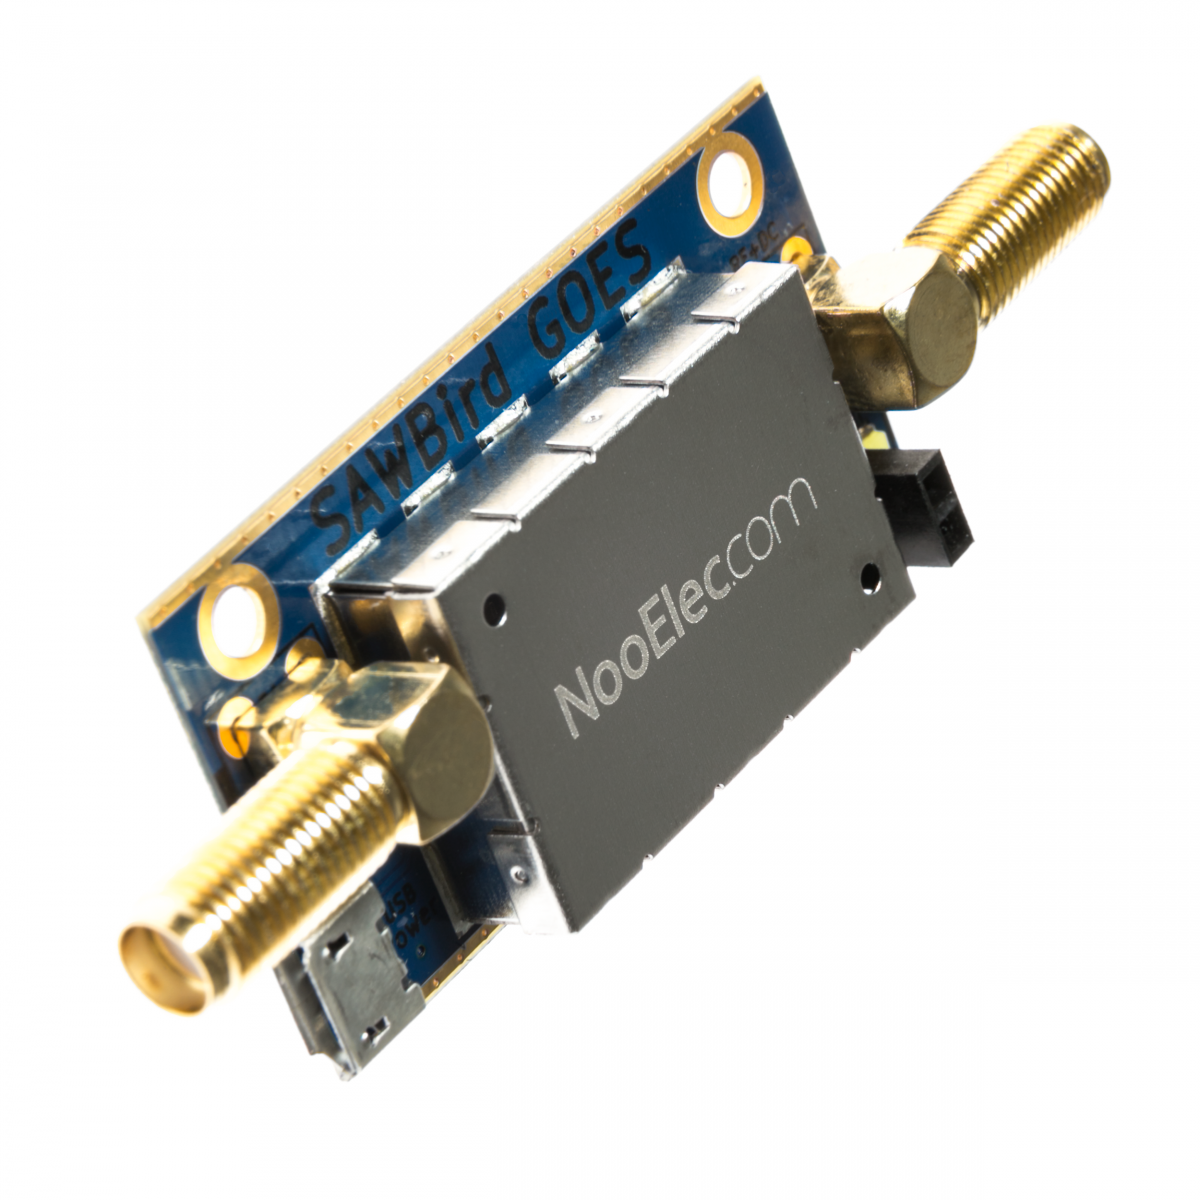 Nooelec SAWbird GOES Barebones - Premium Dual Ultra-Low Noise Amplifier  (LNA) & SAW Filter Module for NOAA (GOES/LRIT/HRIT) Applications  1688MHz